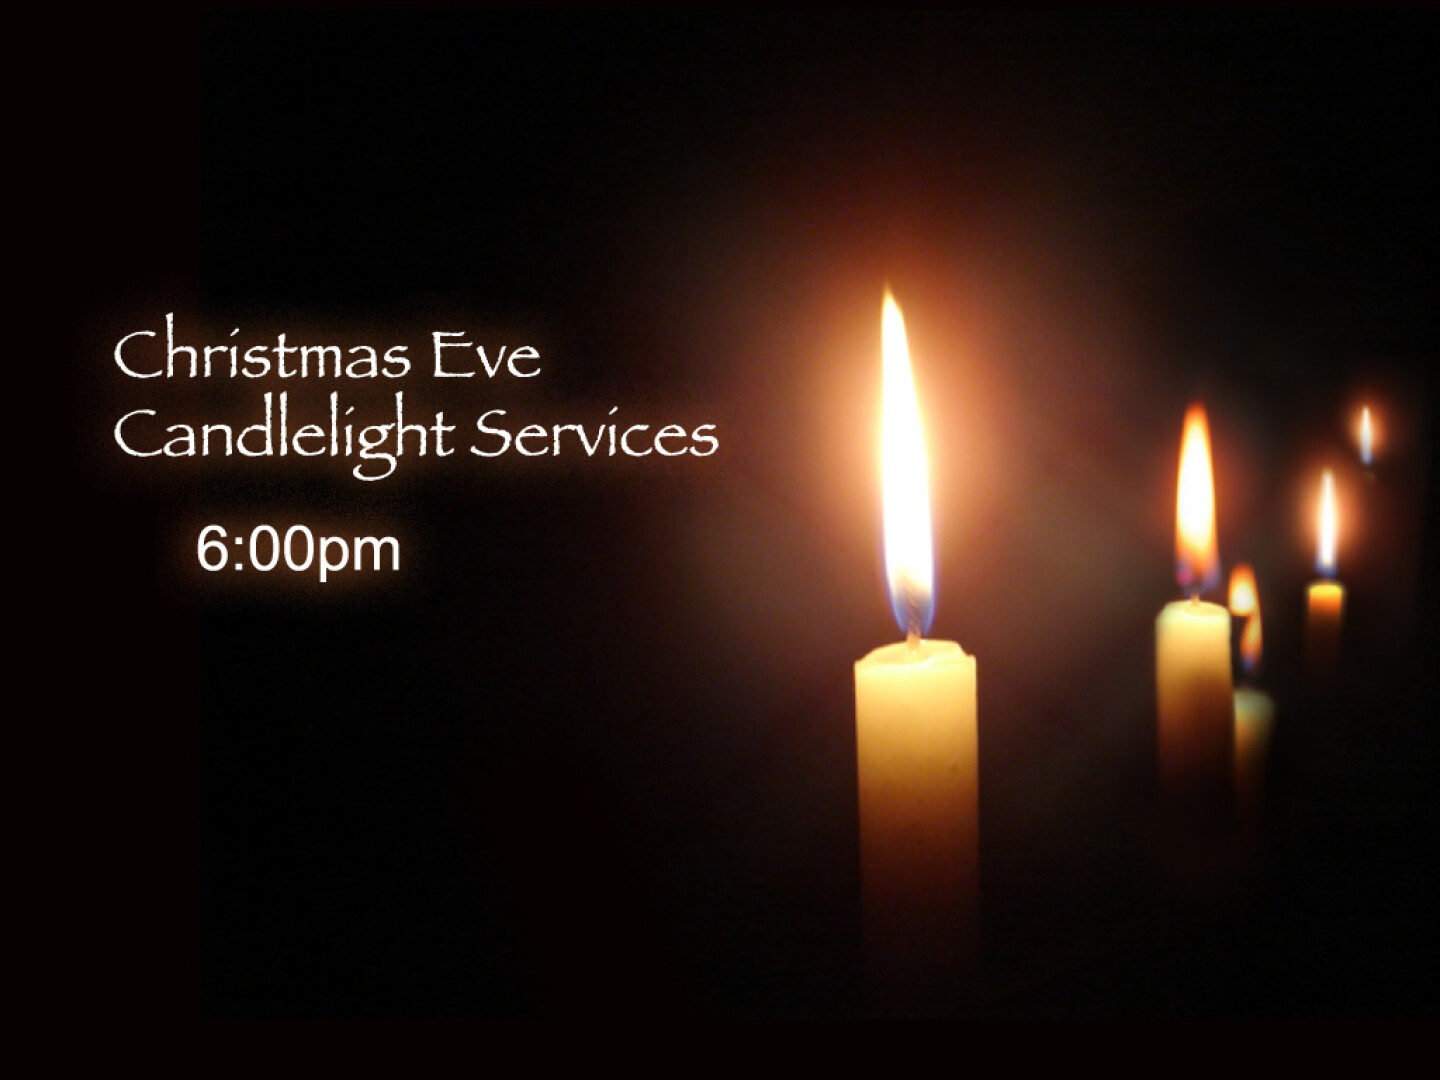 Christmas Eve Candlelight Service - December 24 6:00 PM